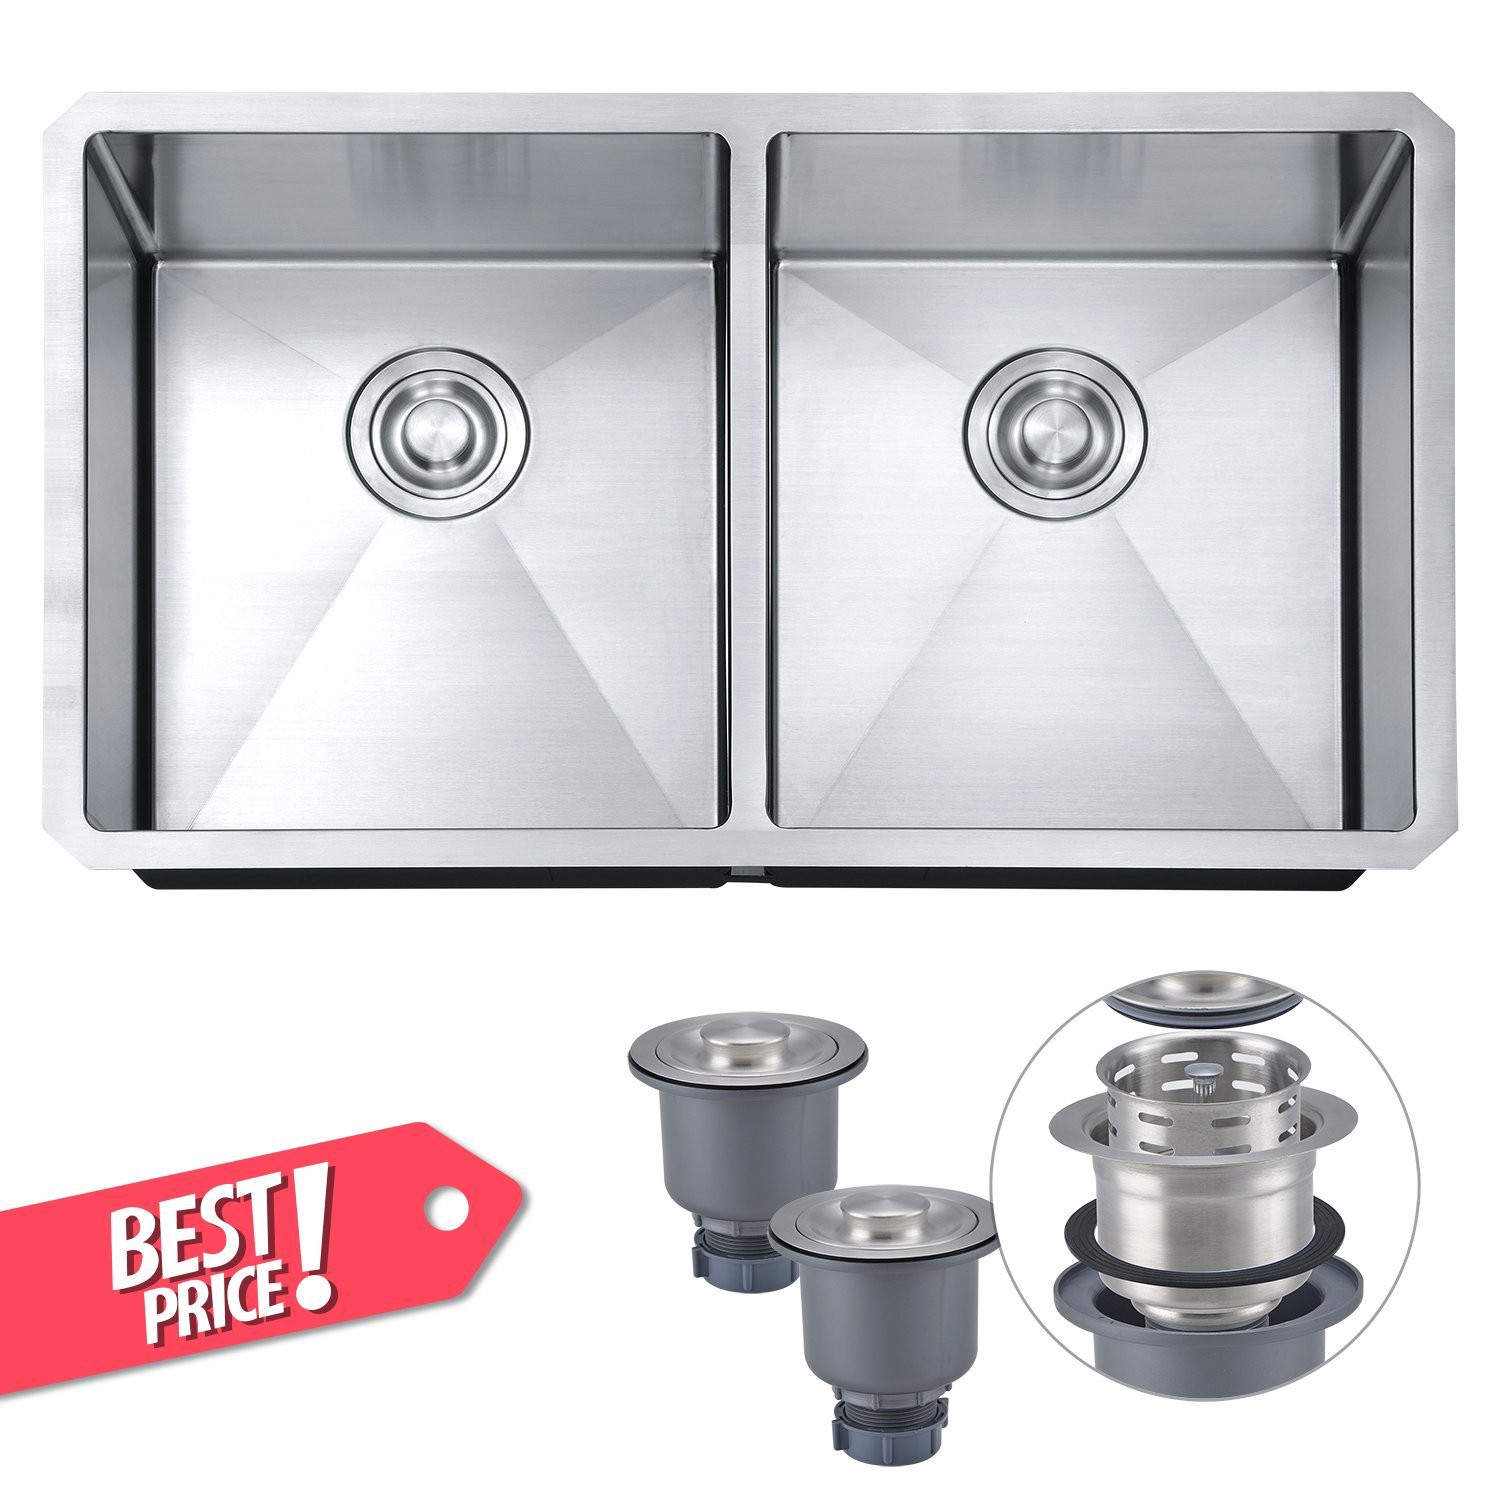 10 Best Stainless Steel Sink Review-Always a good choice